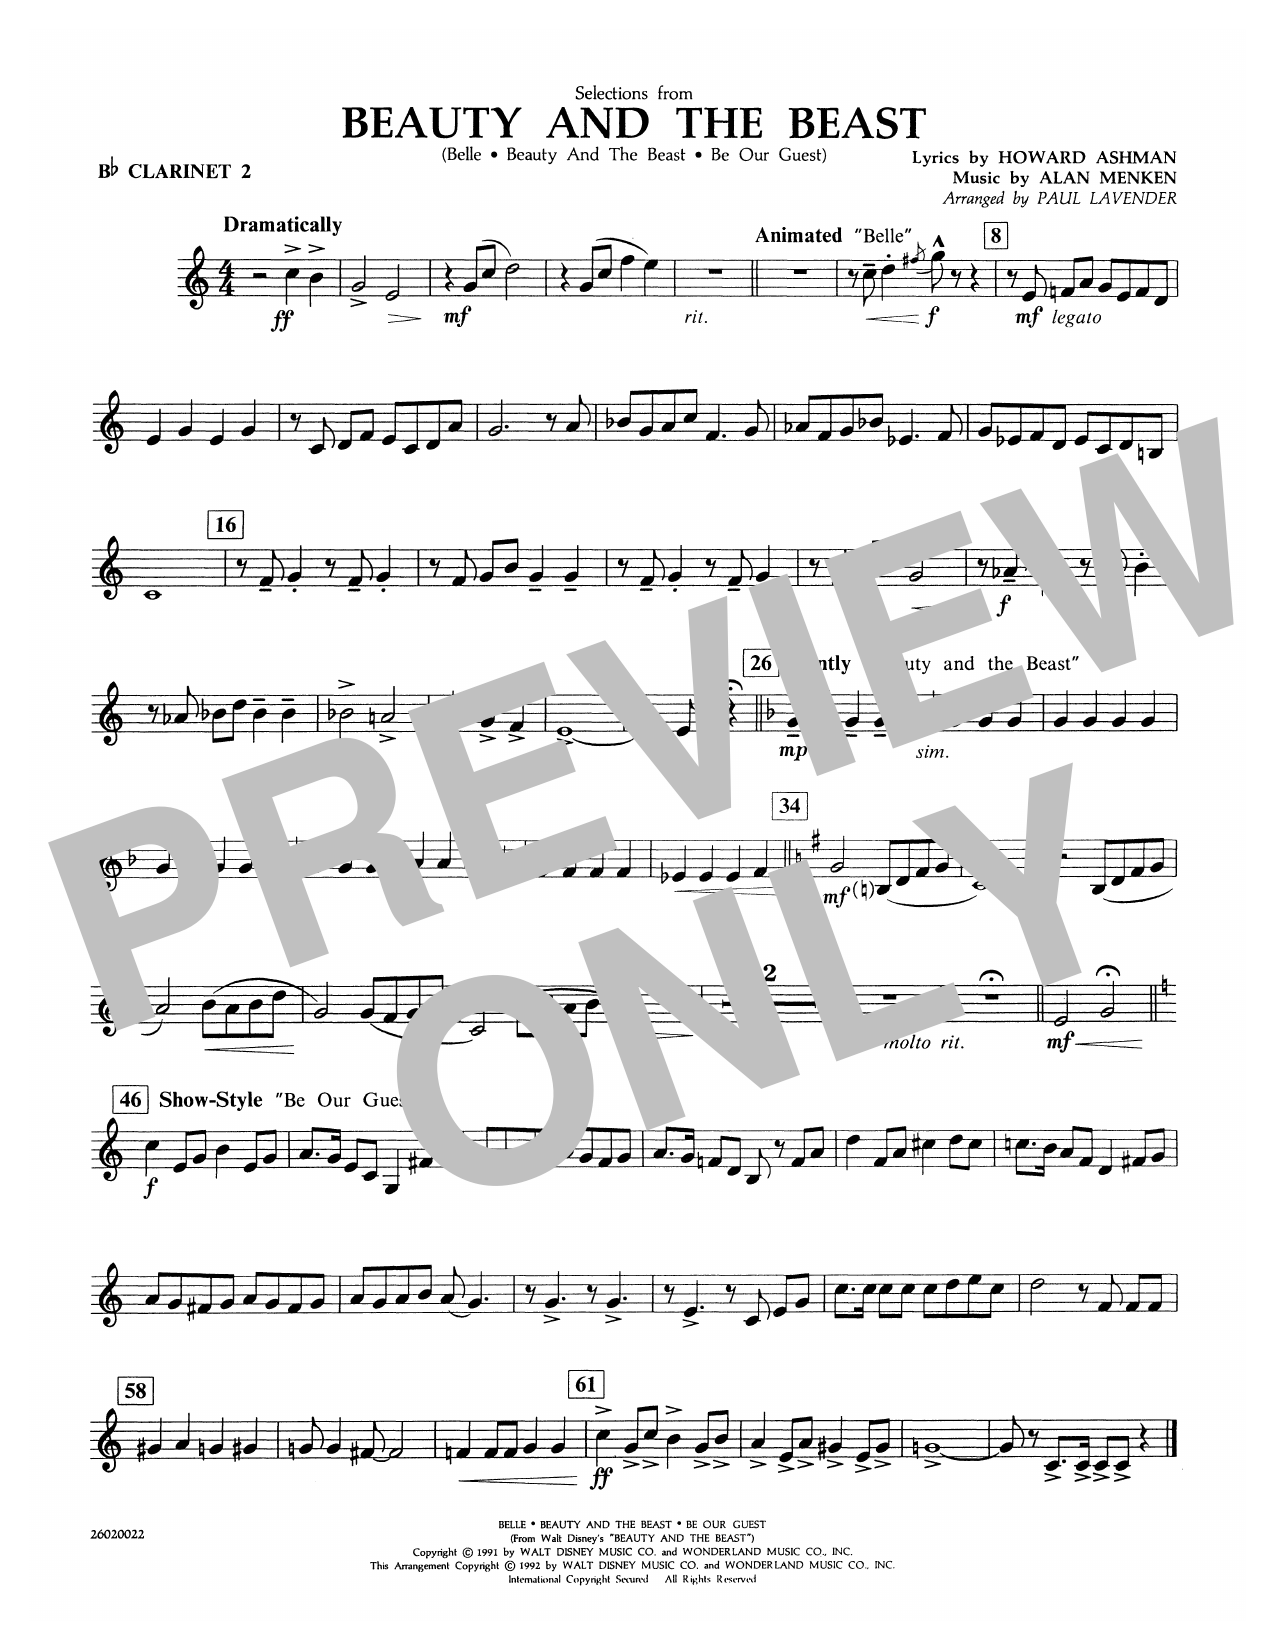 Paul Lavender Selections from Beauty and the Beast - Bb Clarinet 2 sheet music notes and chords. Download Printable PDF.